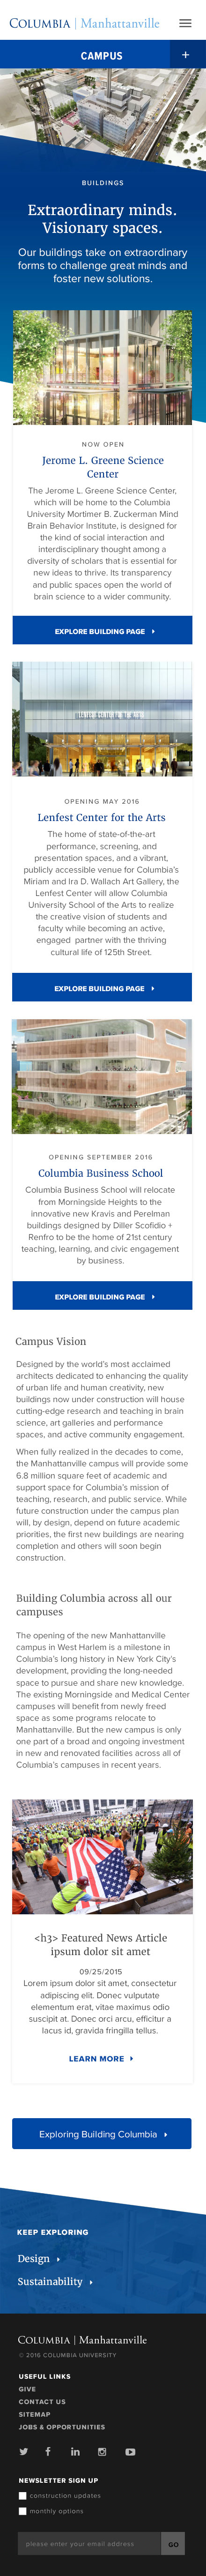 Columbia-Manhattanville-Campus-Mobile-Buildings